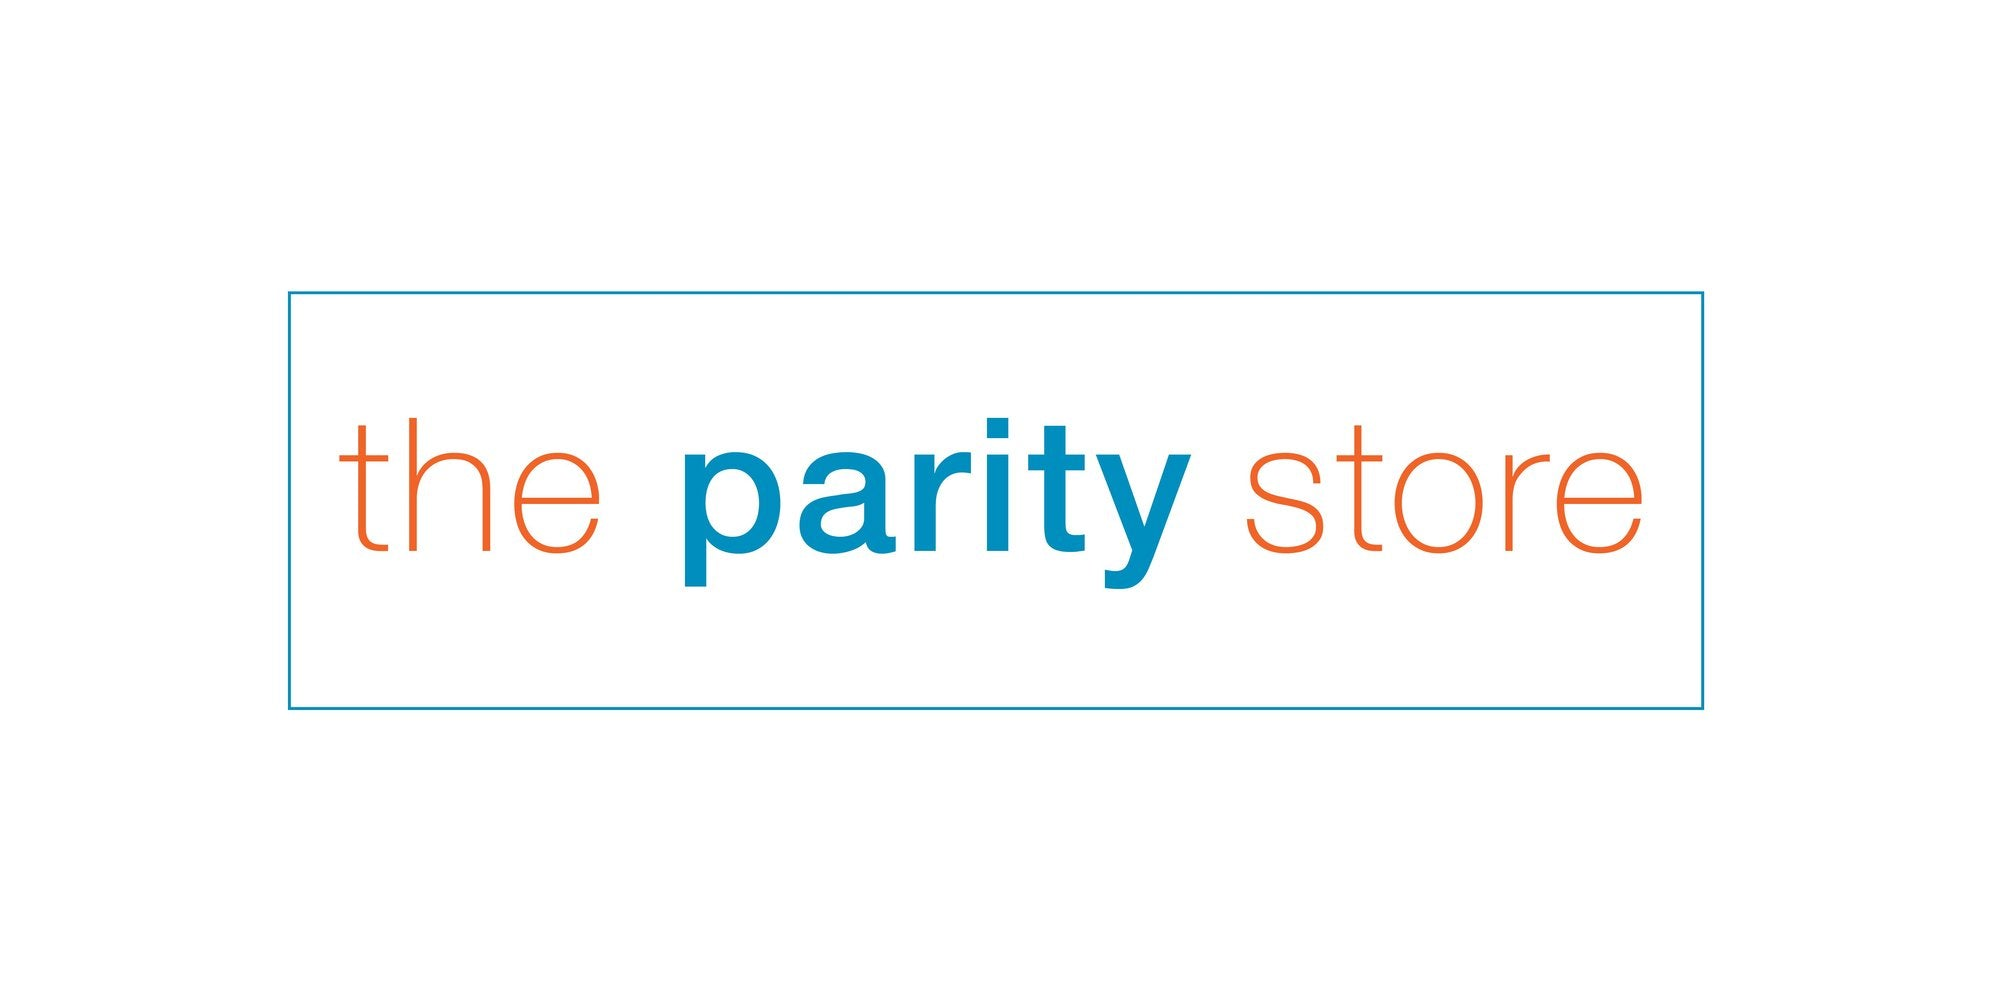 About The Parity Store